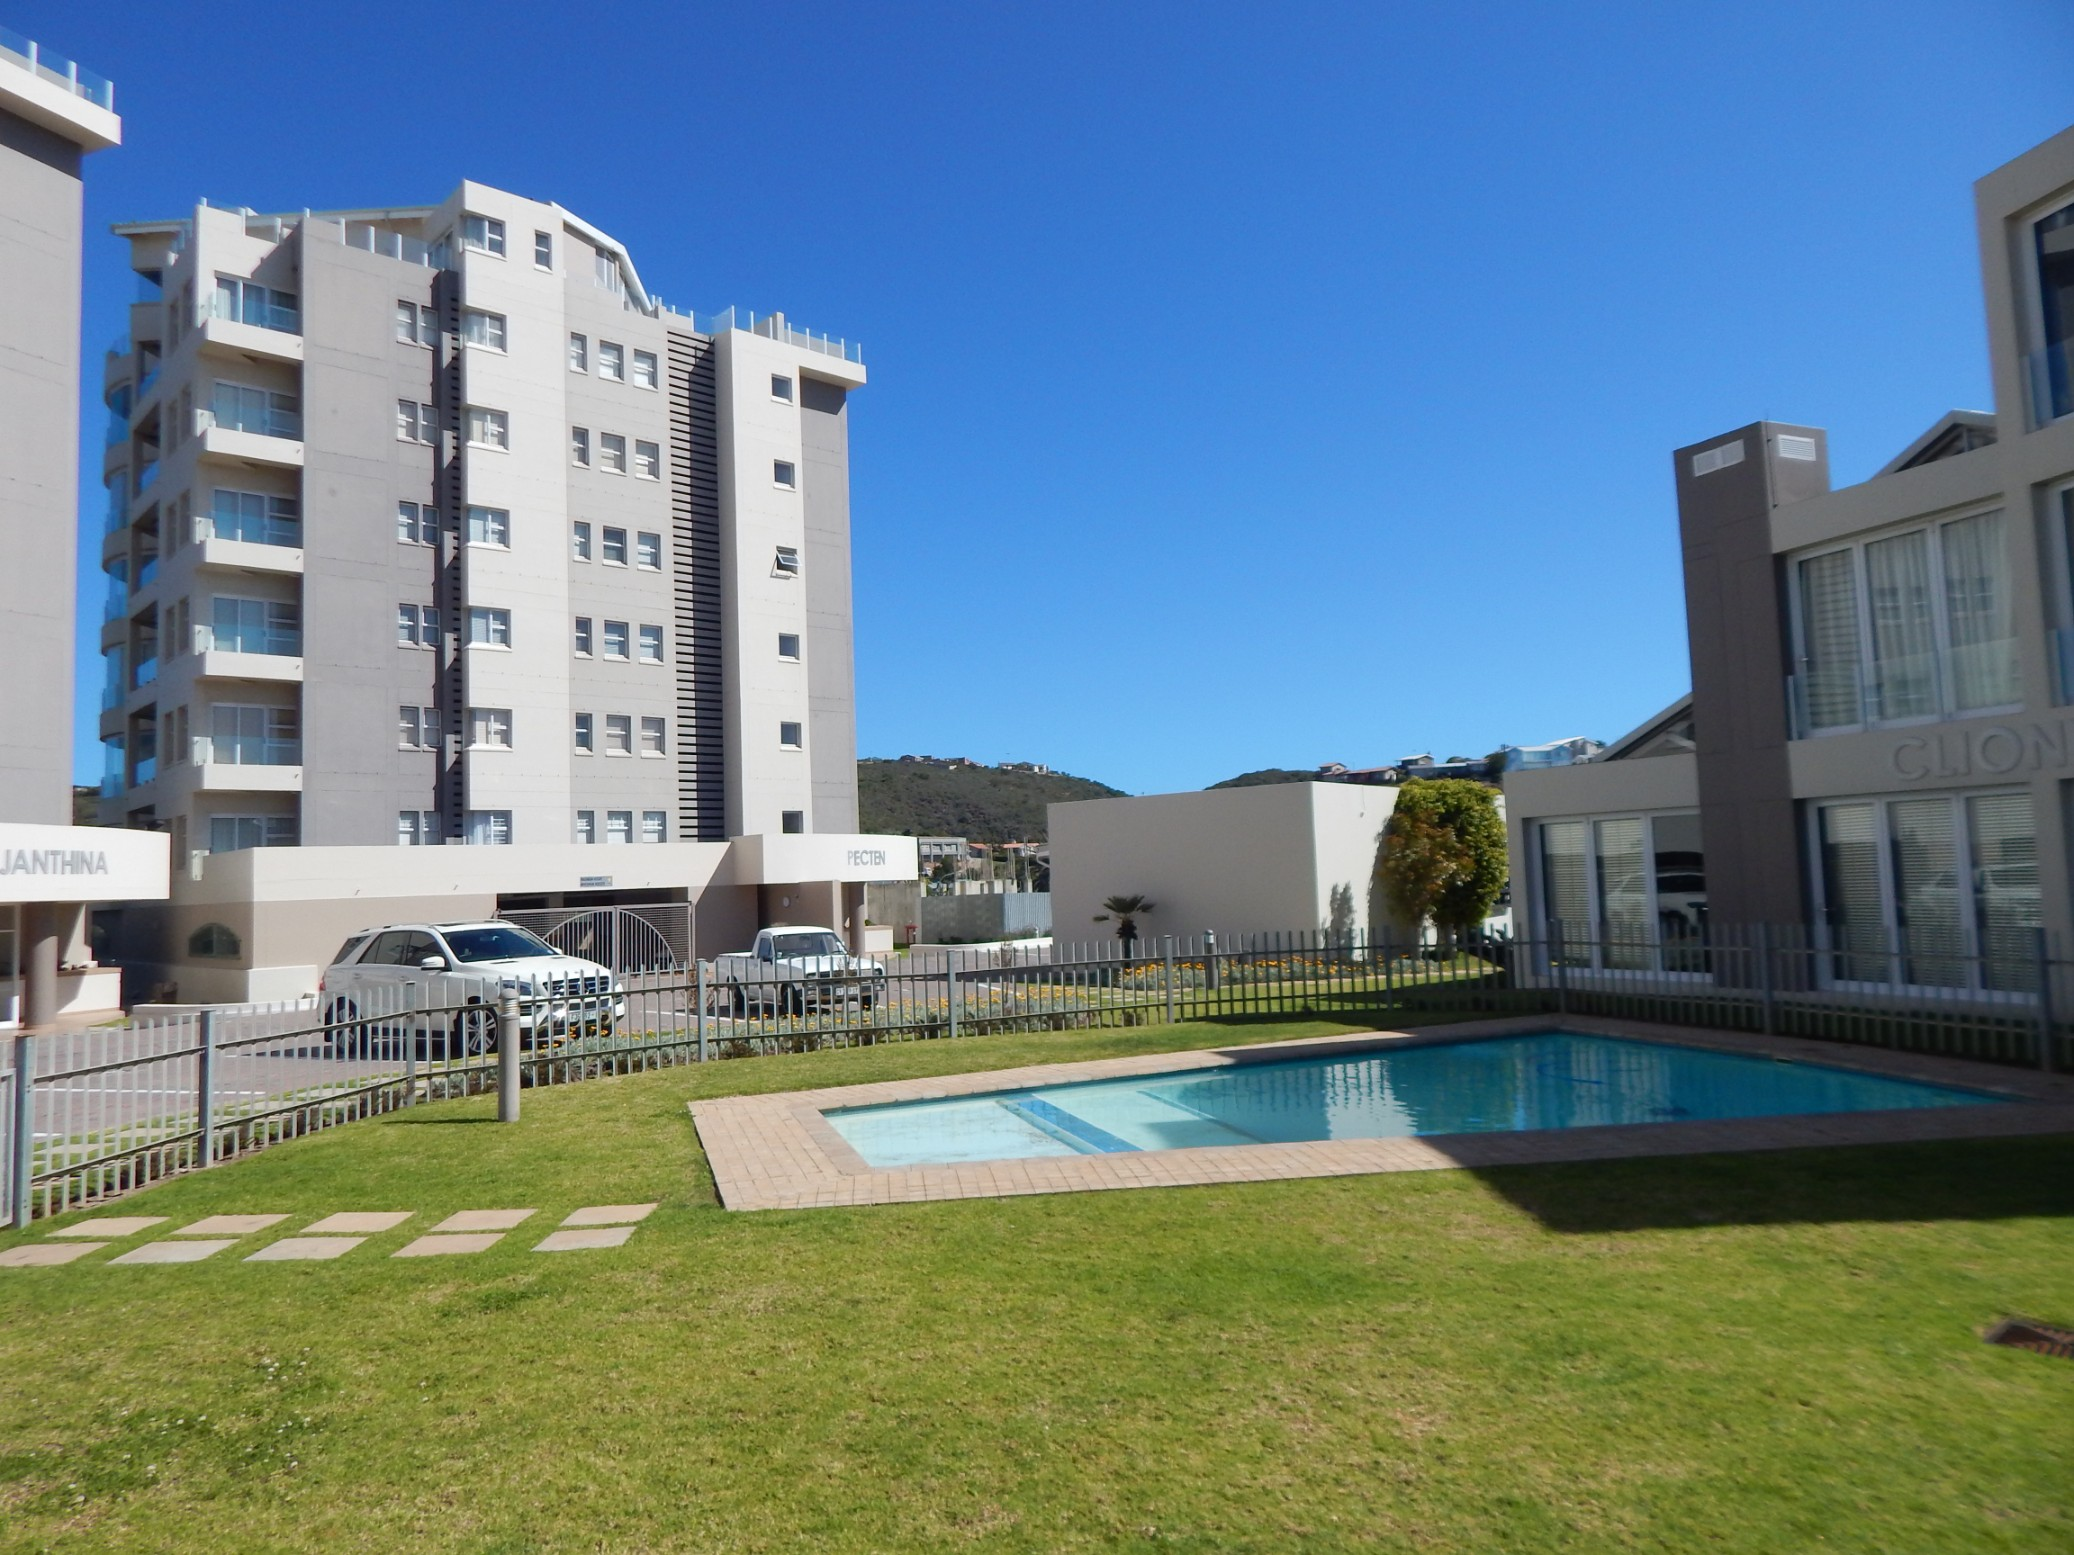 3 Bedroom Apartment for sale in Diaz Beach ENT0069020 : photo#3